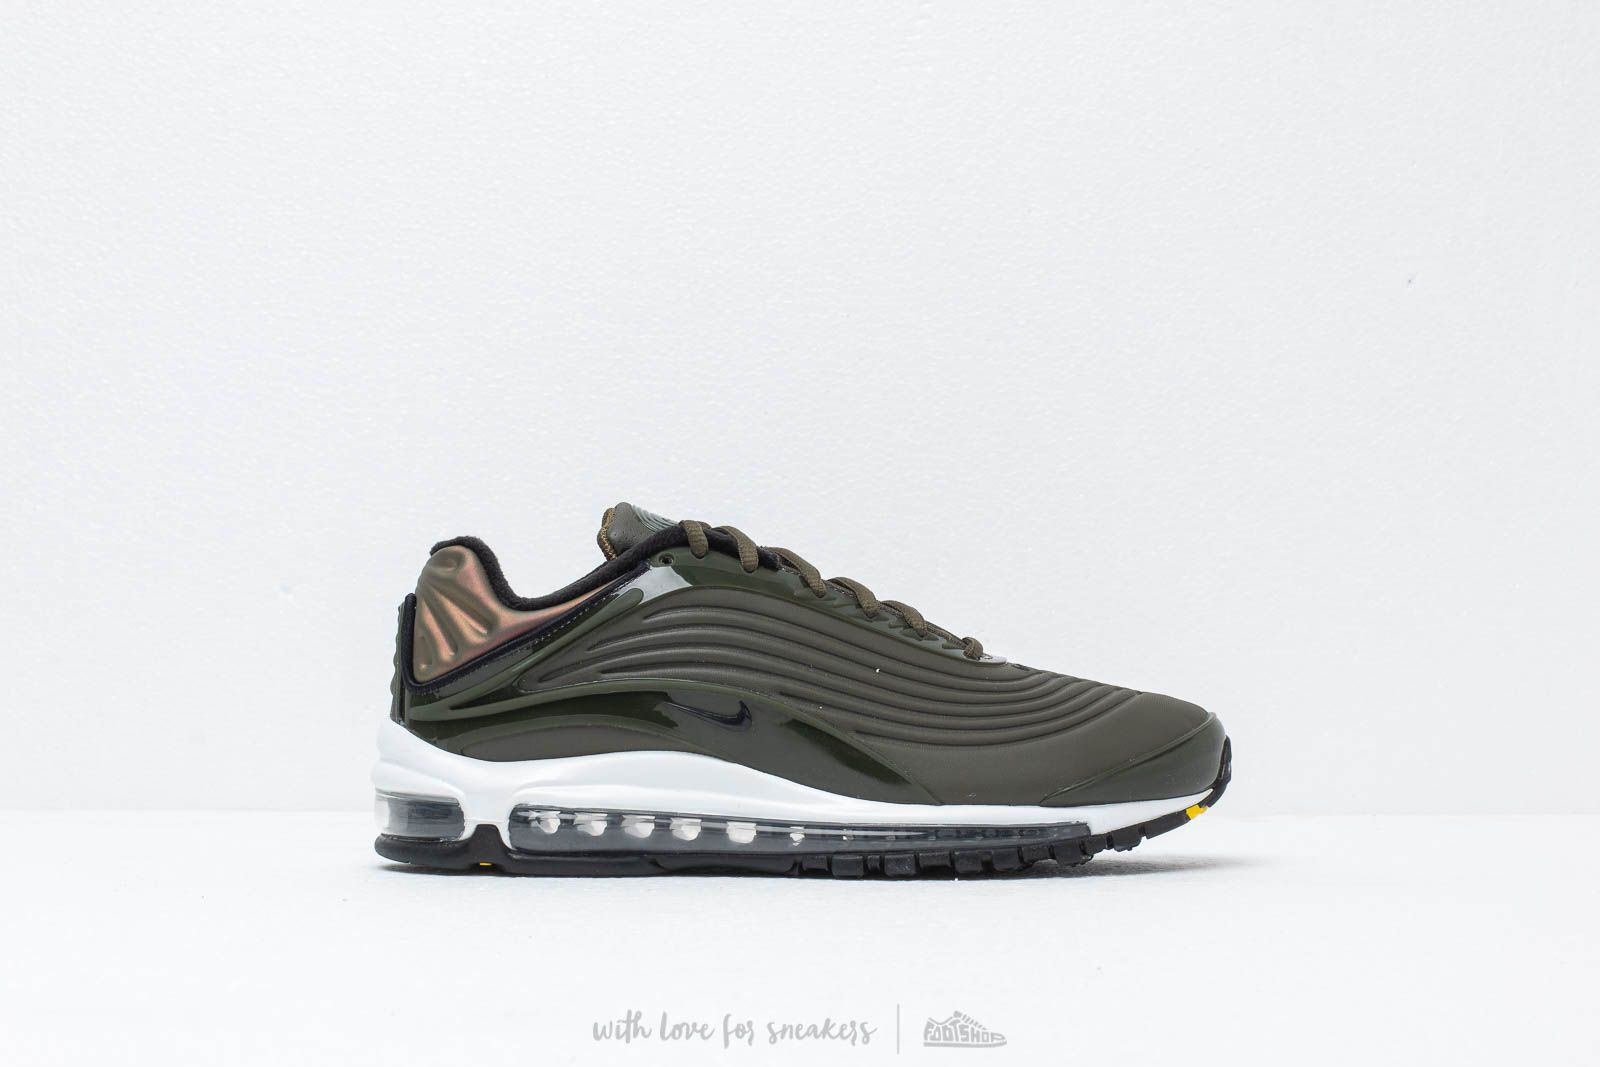 best website 68afc 7a3c9 Nike Air Max Deluxe Se Cargo Khaki  Black-Amarillo-White at a great